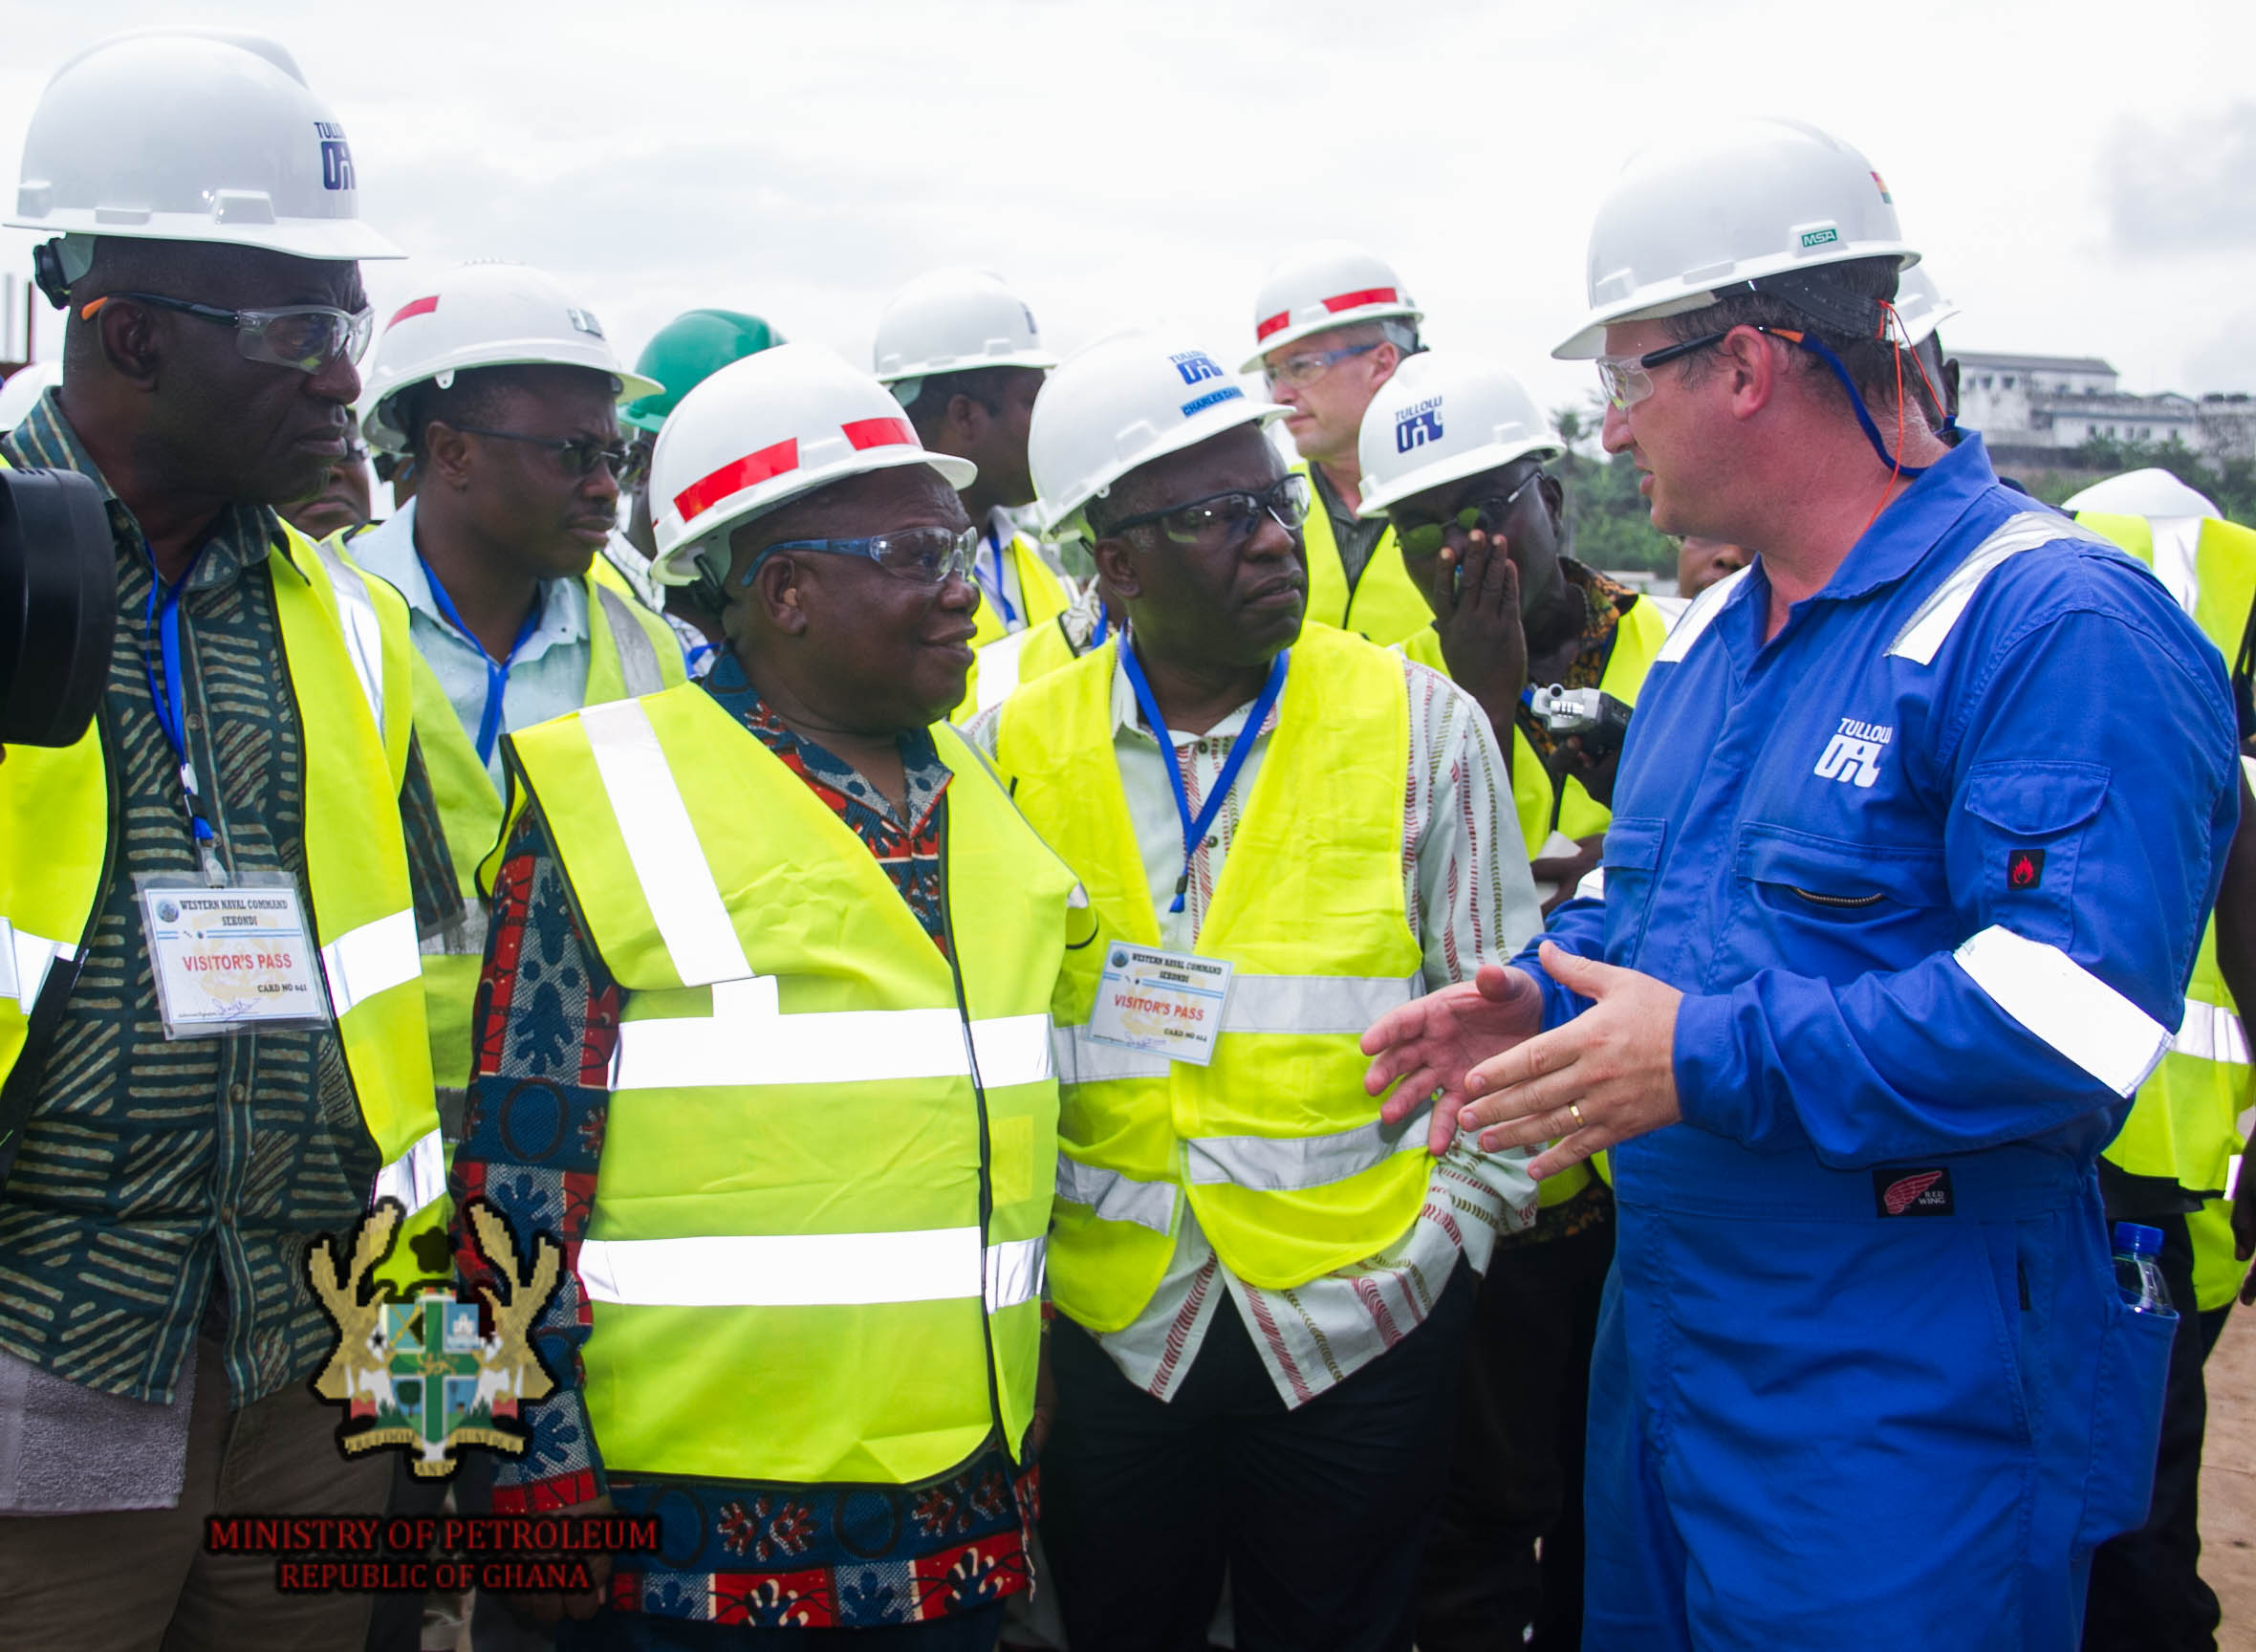 The Honorable Benjamin Dagadu (second from left), Ghana's Deputy Minister of Petroleum, visits a fabrication site in the western region of Ghana